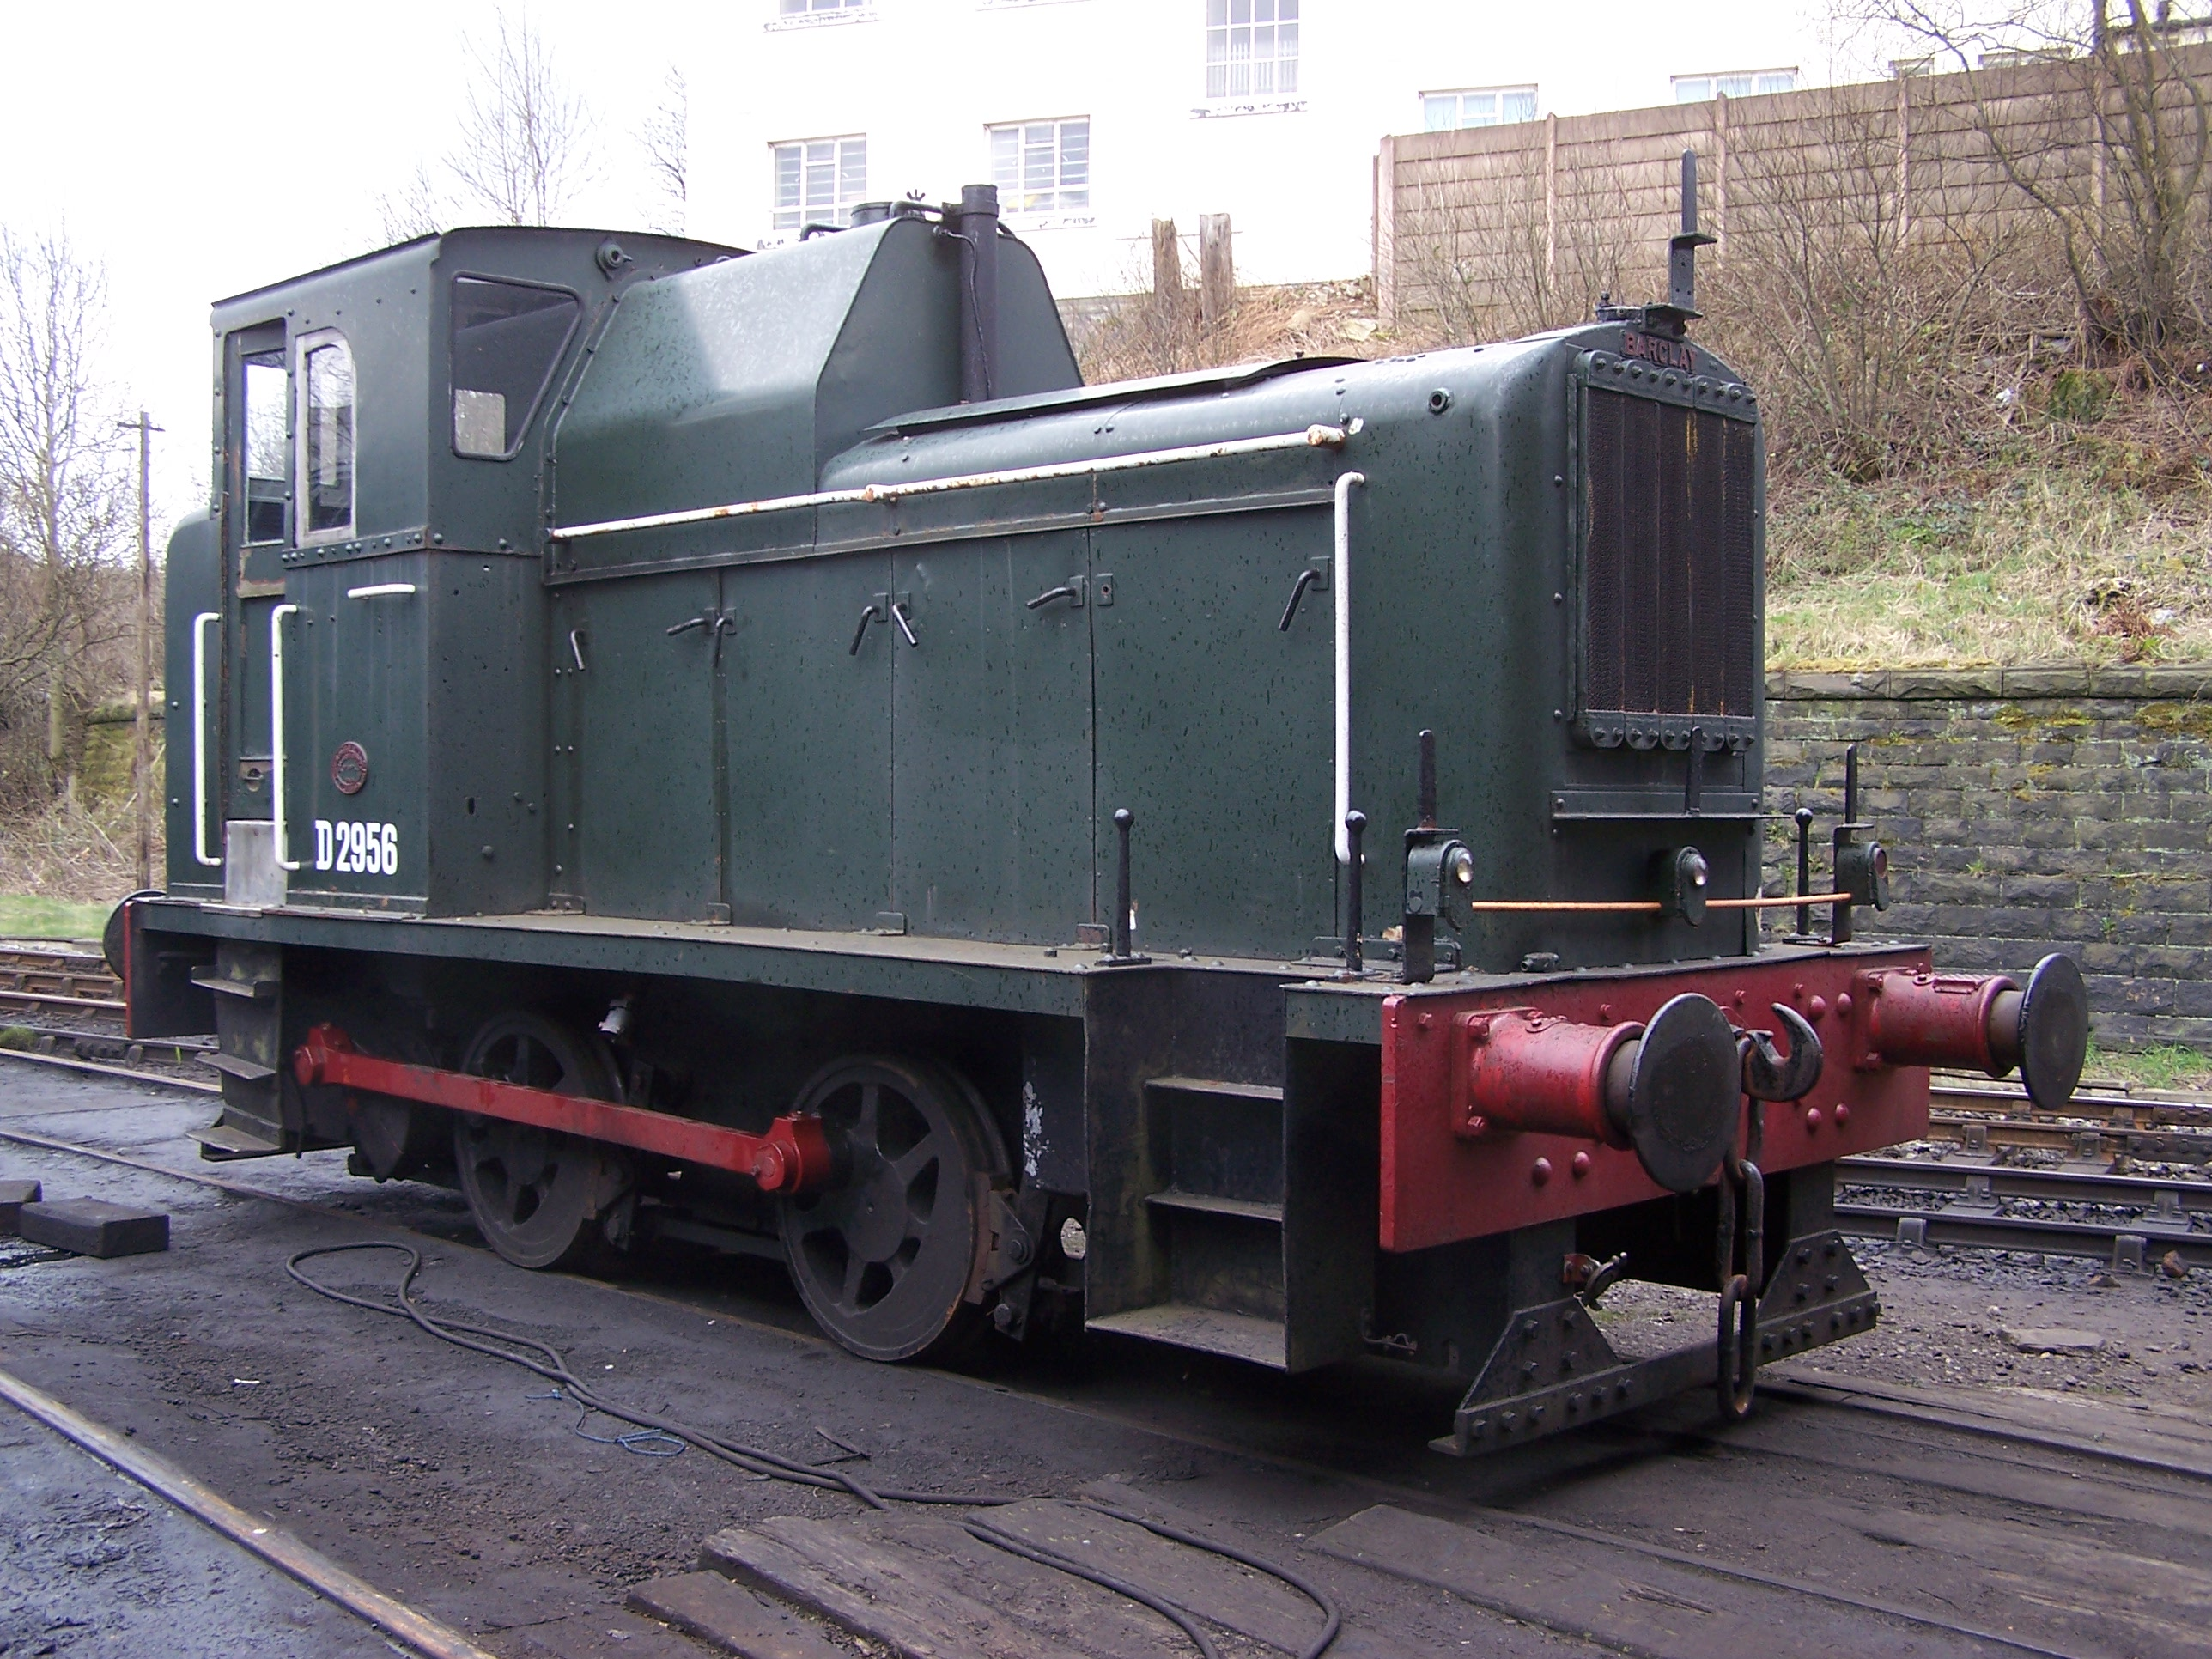 D2956 at the East Lancashire Railway in March 2008. ©David Mylett